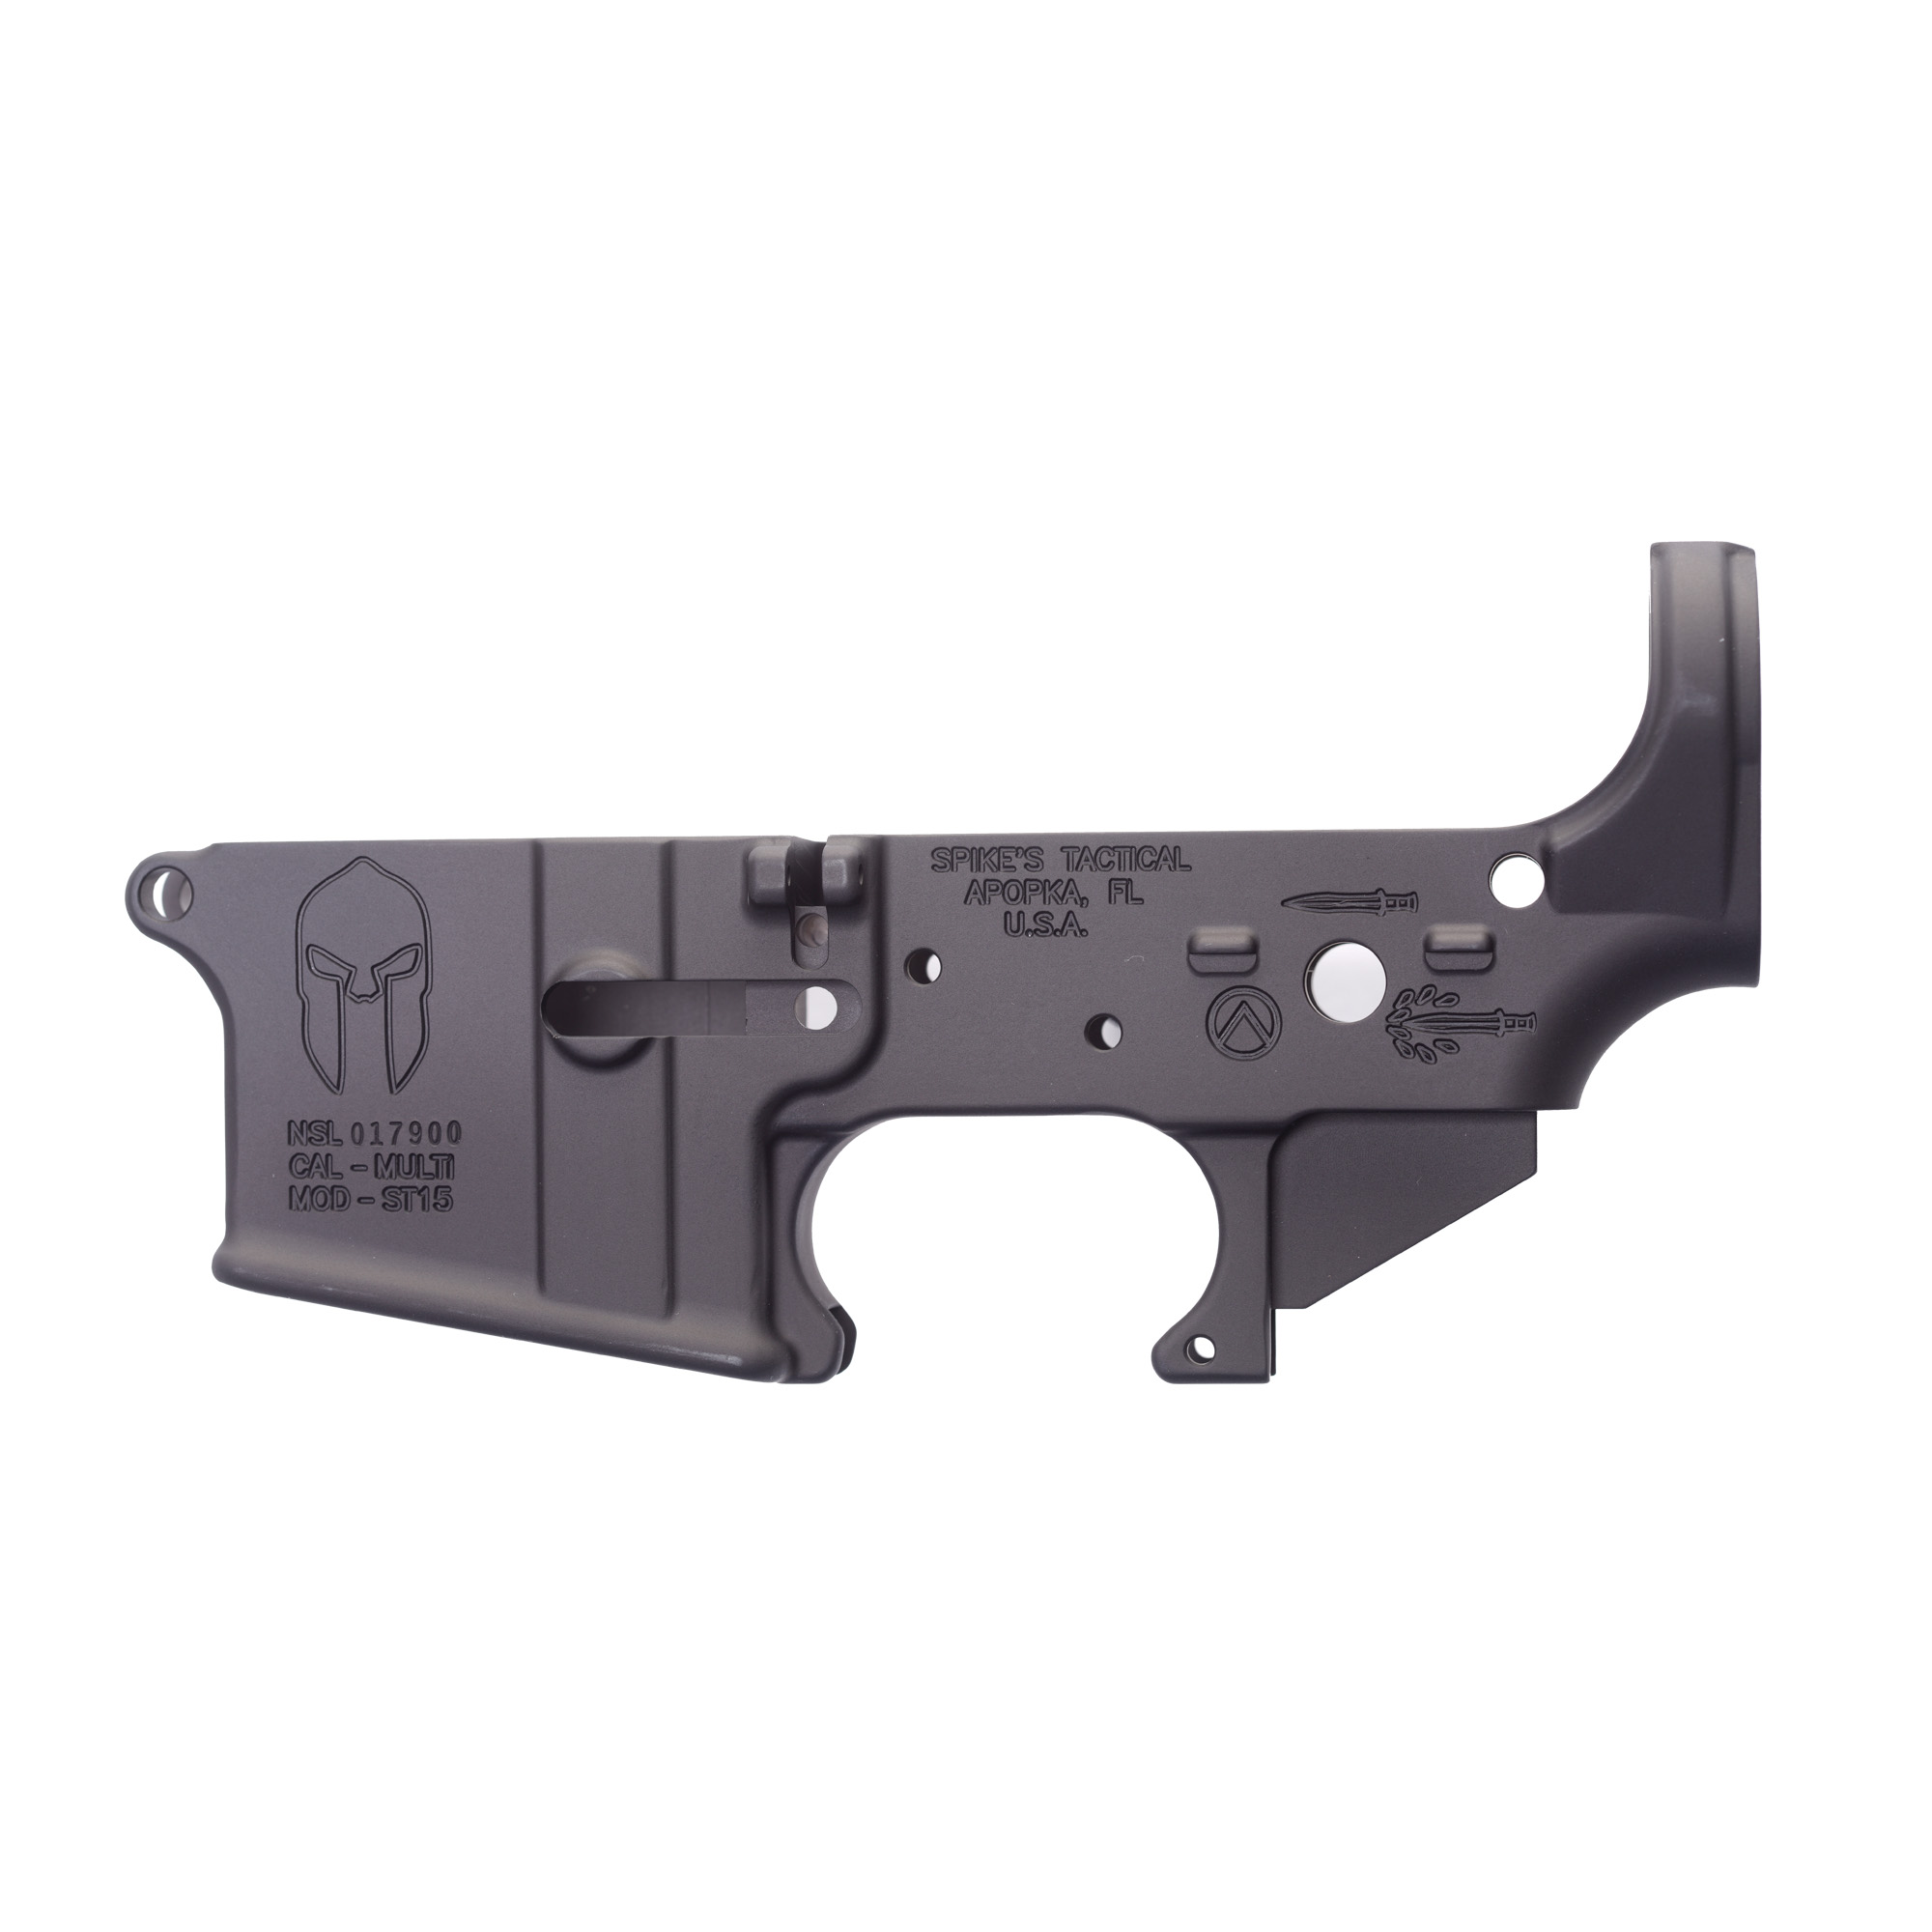 Spikes Stripped Lower (spartan)